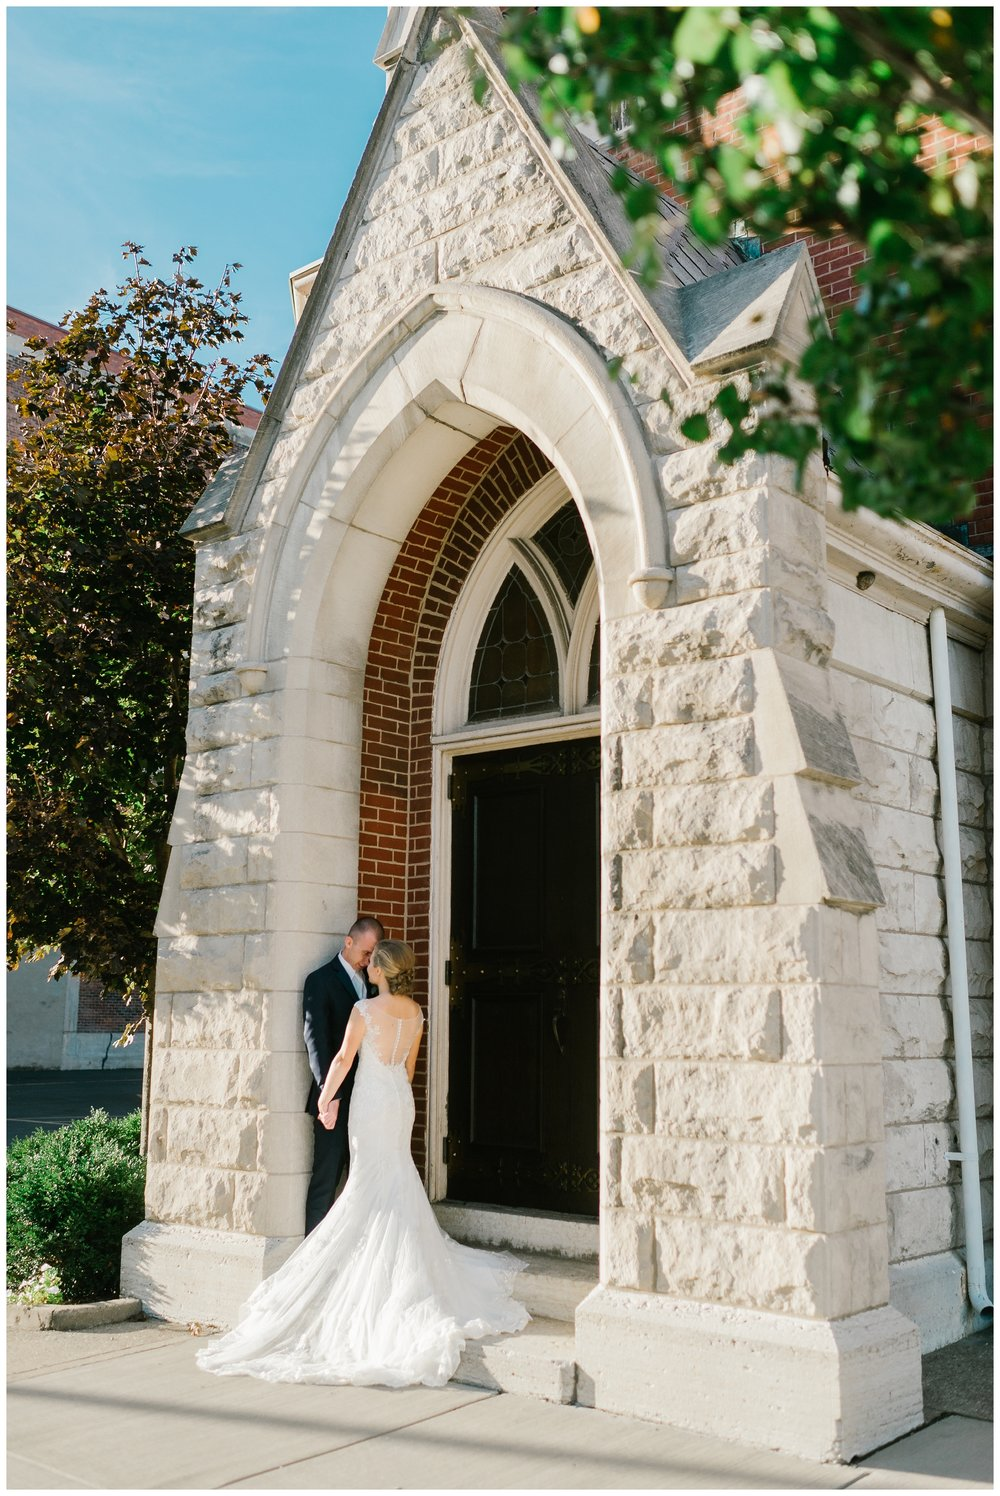 Rebecca_Shehorn_Photography_Indianapolis_Wedding_Photographer_7624.jpg